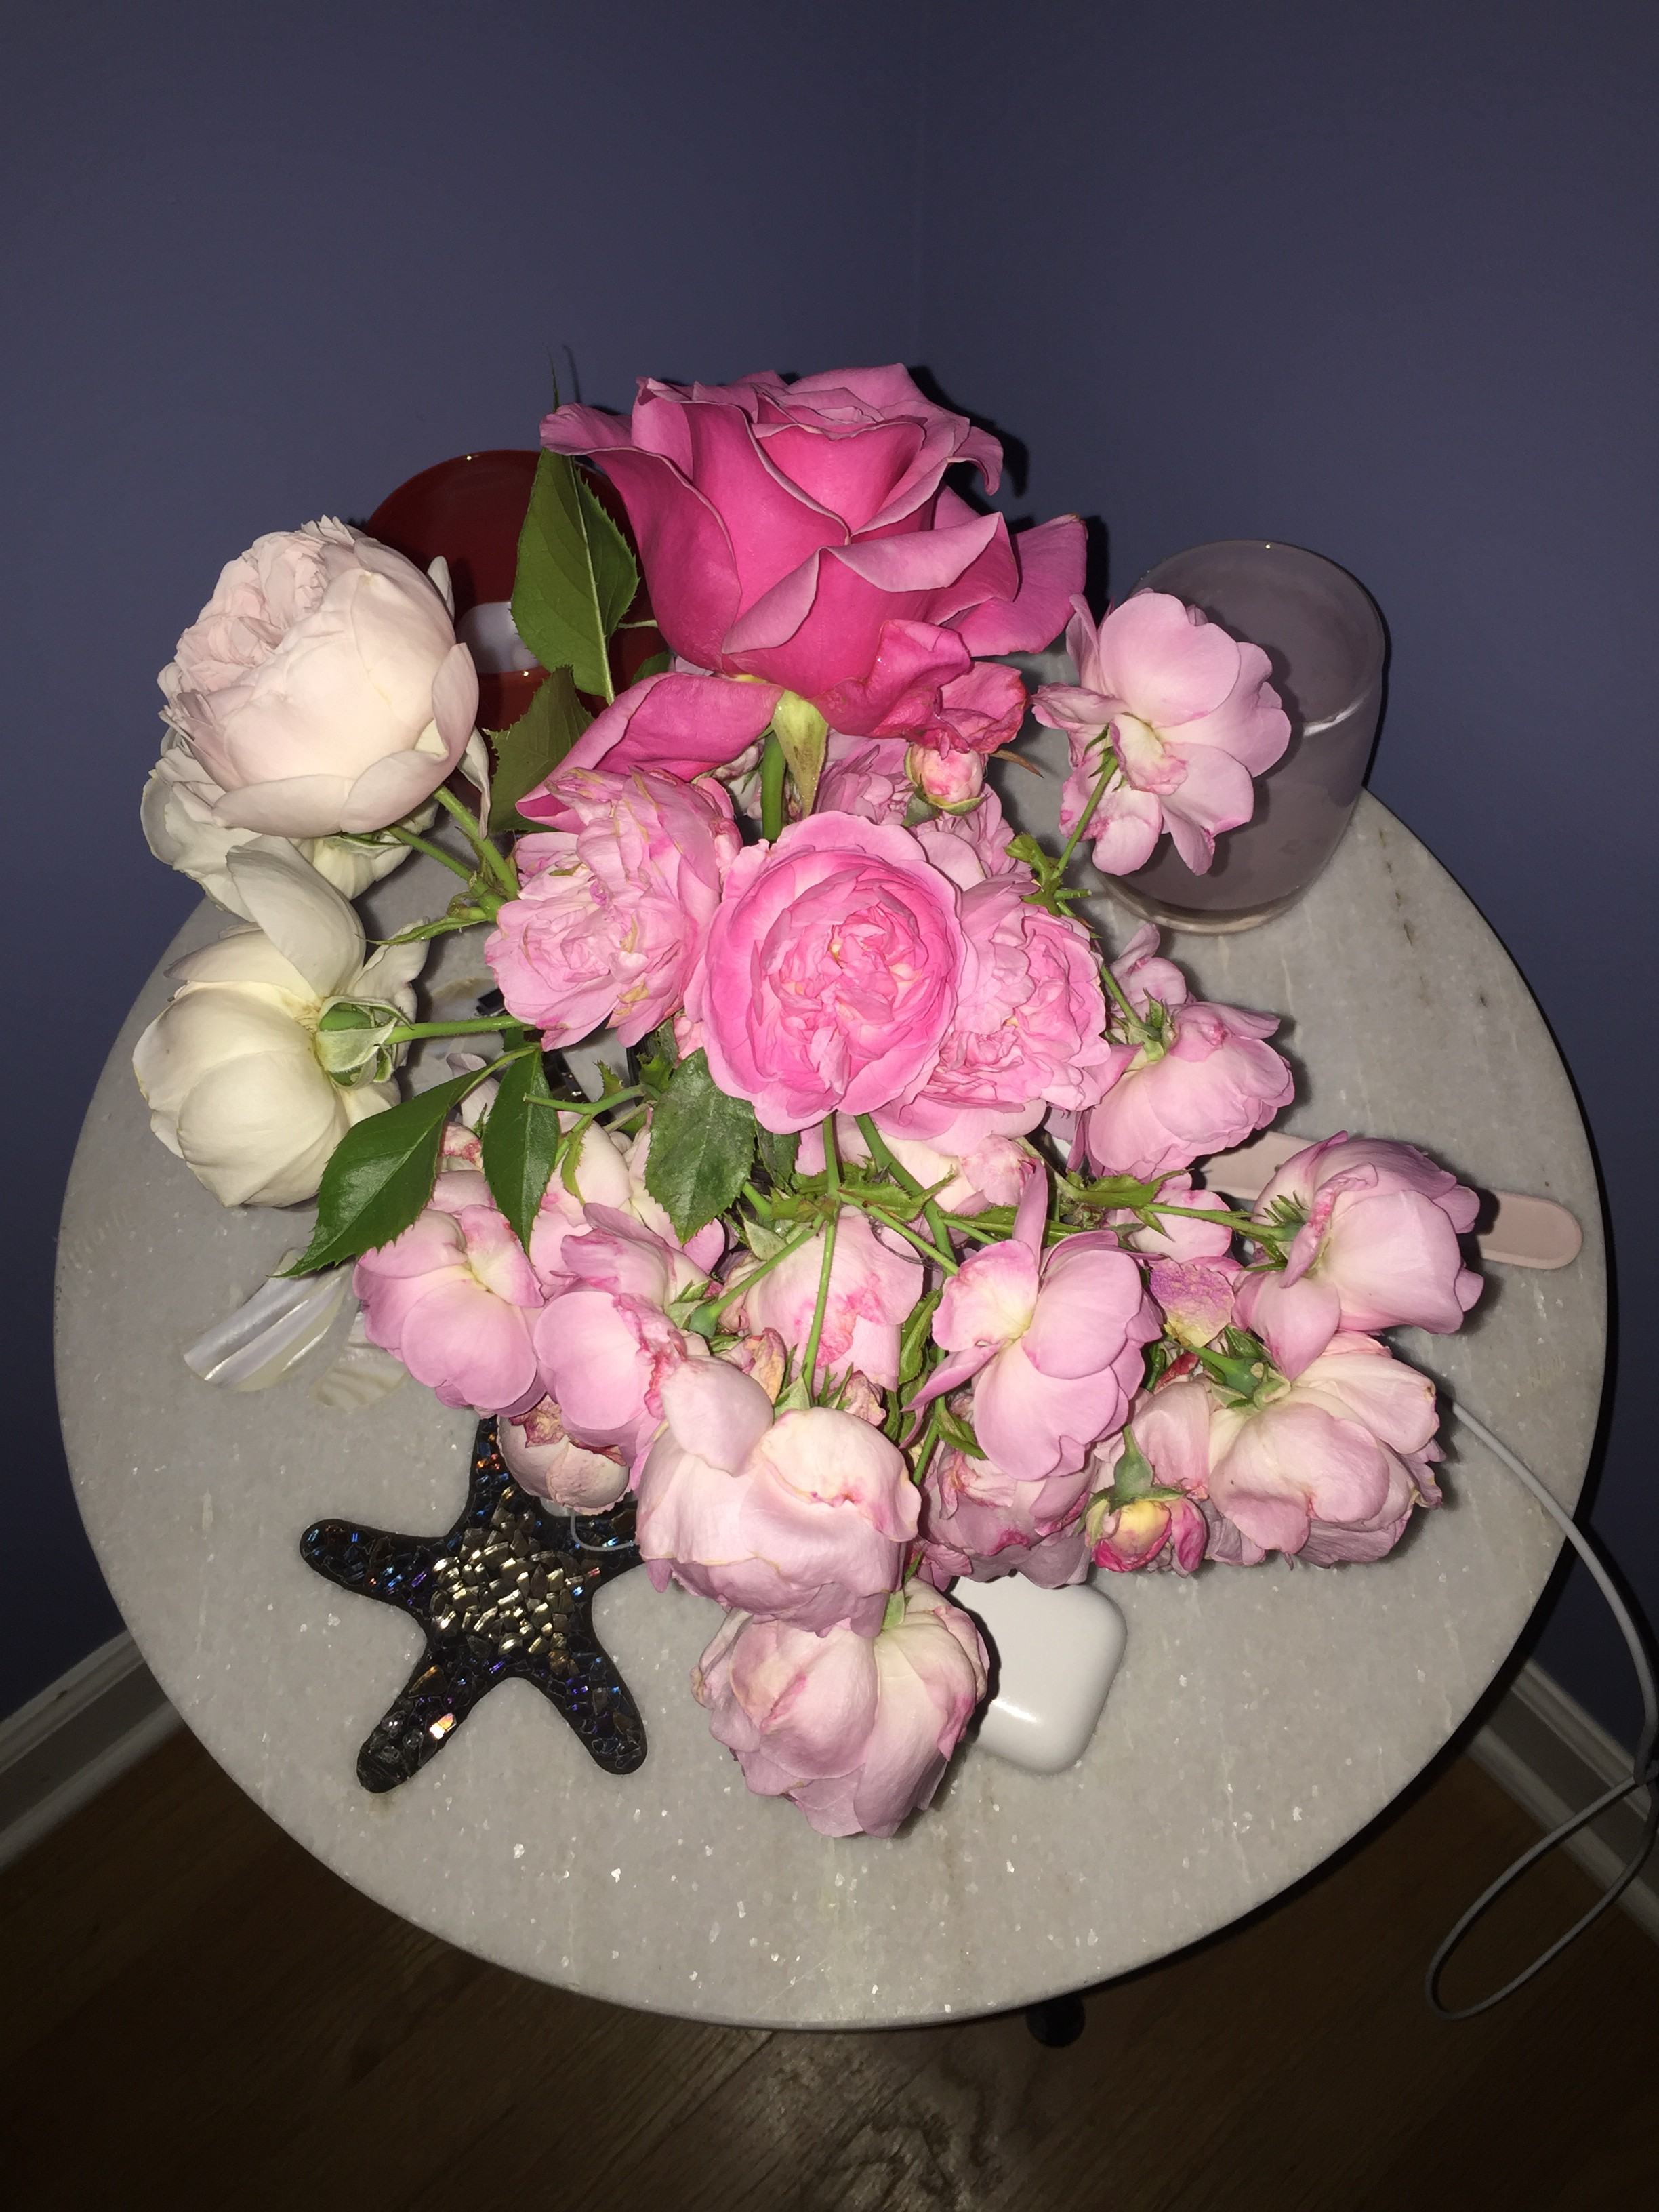 A bouquet of pink roses on a small round table.